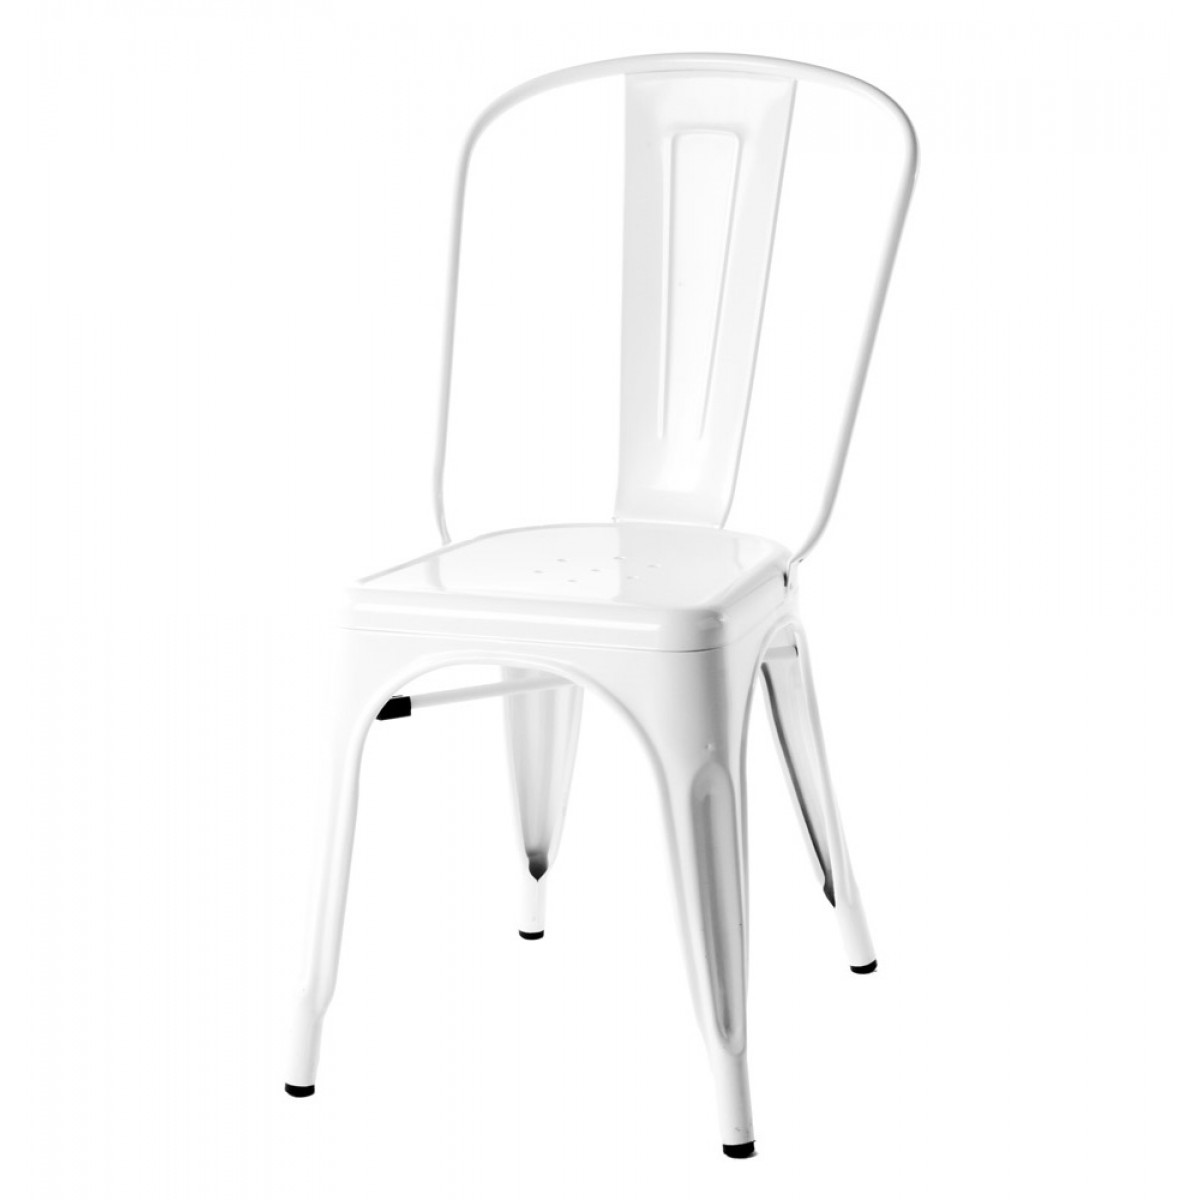 ll tally atelier a why never i chair replica tolix real buy